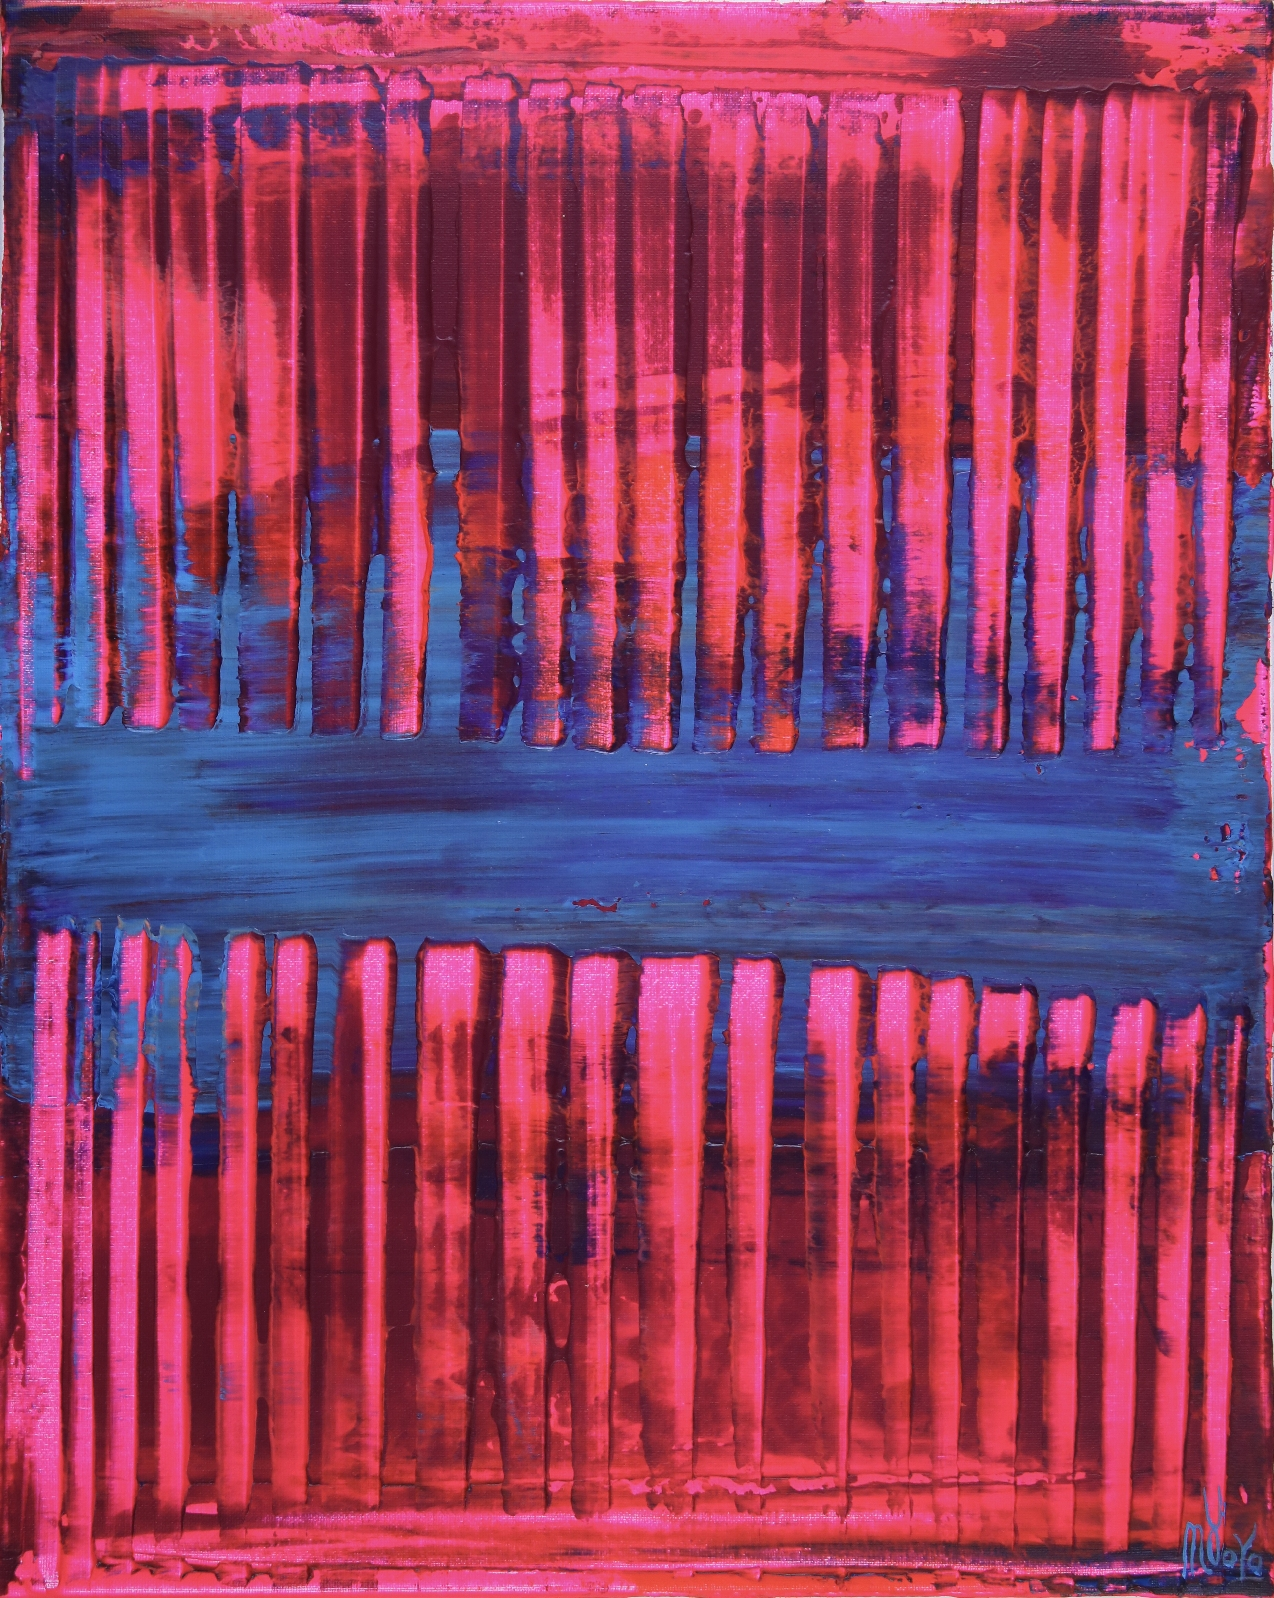 Pink and Blue (Visible lights) by Nestor Toro - Los Angeles